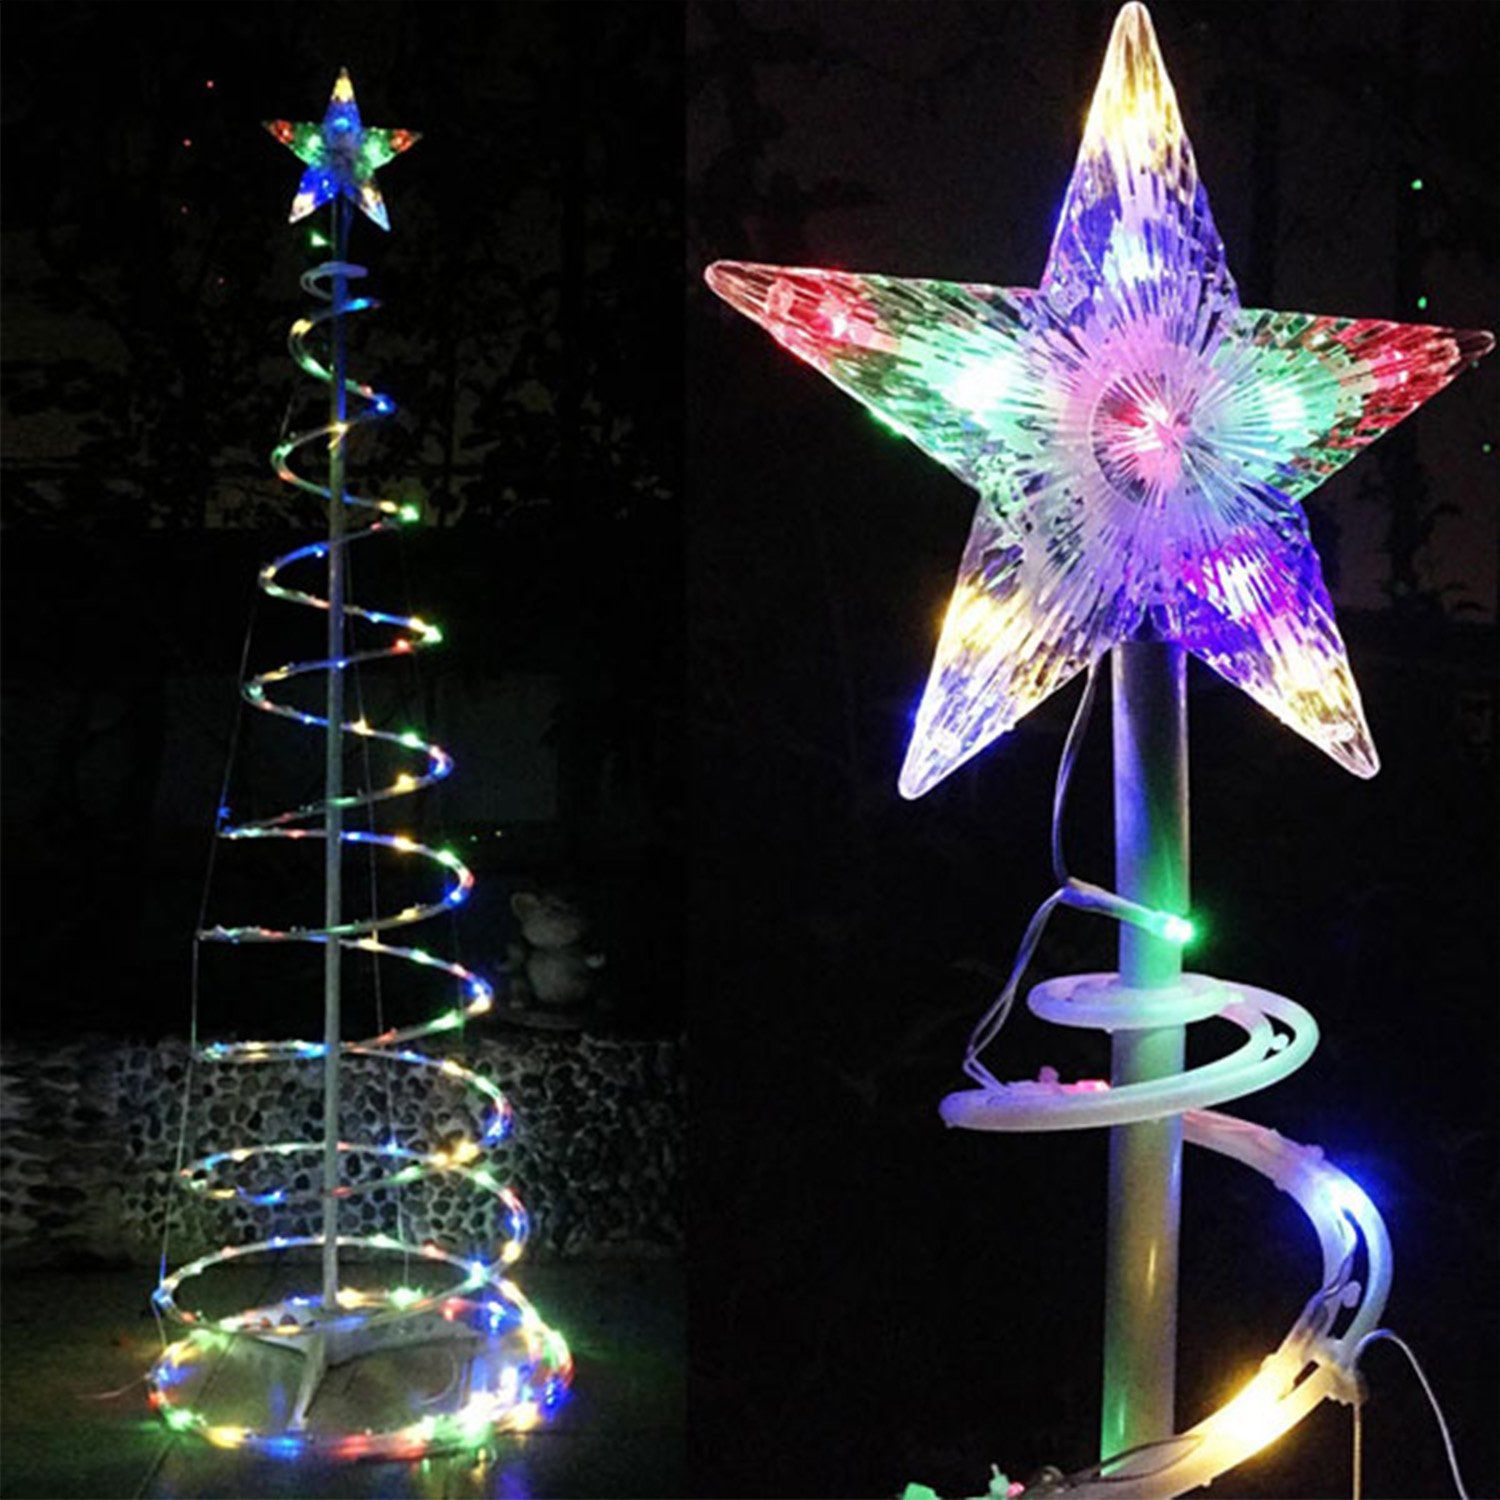 Koval Inc 5ft 6ft Bulk Discount Clear Led Rgby Lighted Spiral Christmas Tree 5 Units 6ft Spiral Christmas Tree Outdoor Holiday Decor Spiral Tree